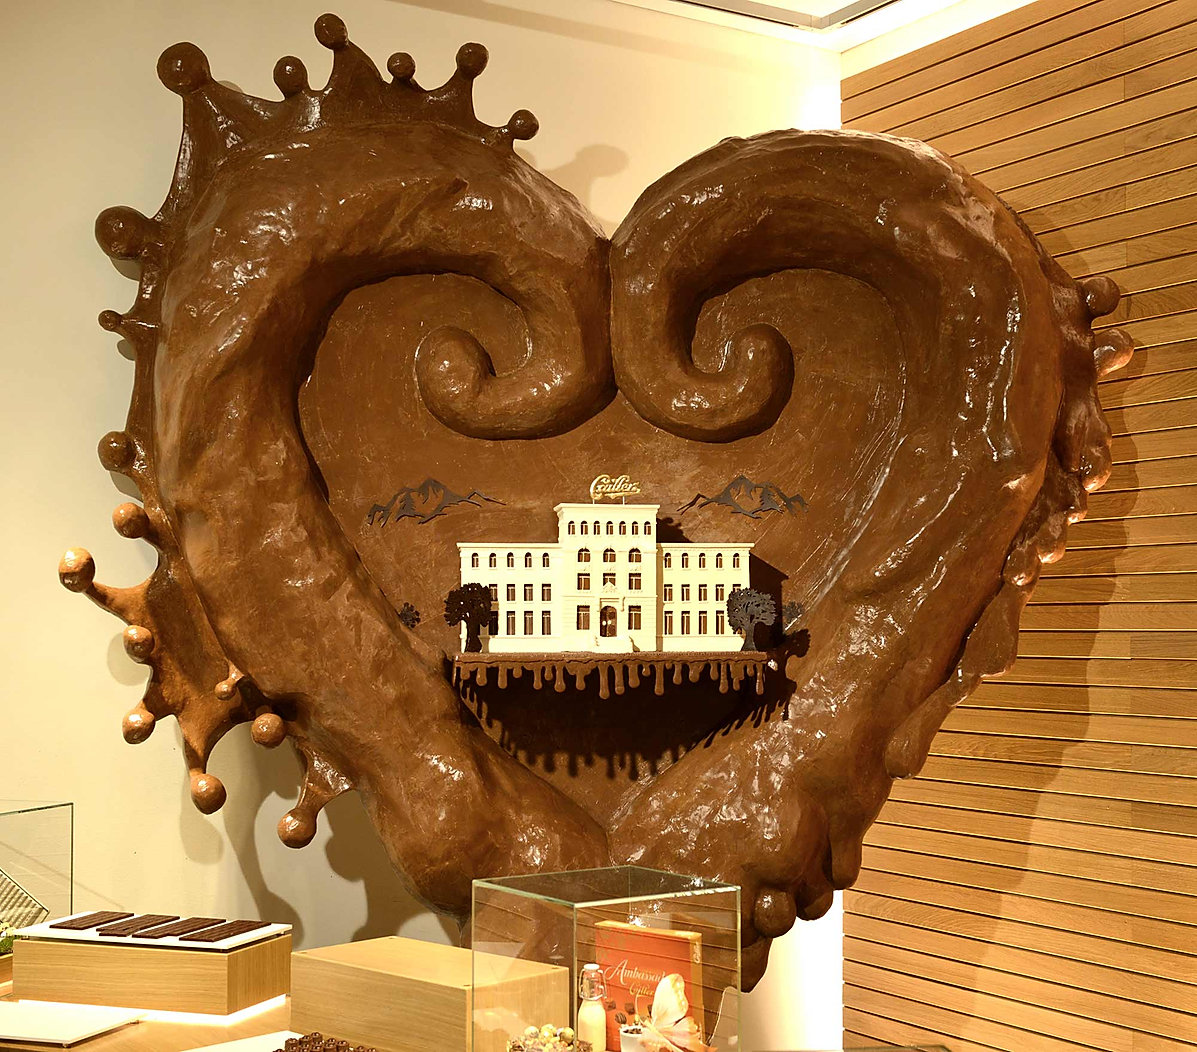 Giant chocolate heart  created by Gerhard Petzl for Cailler, Switzerland.